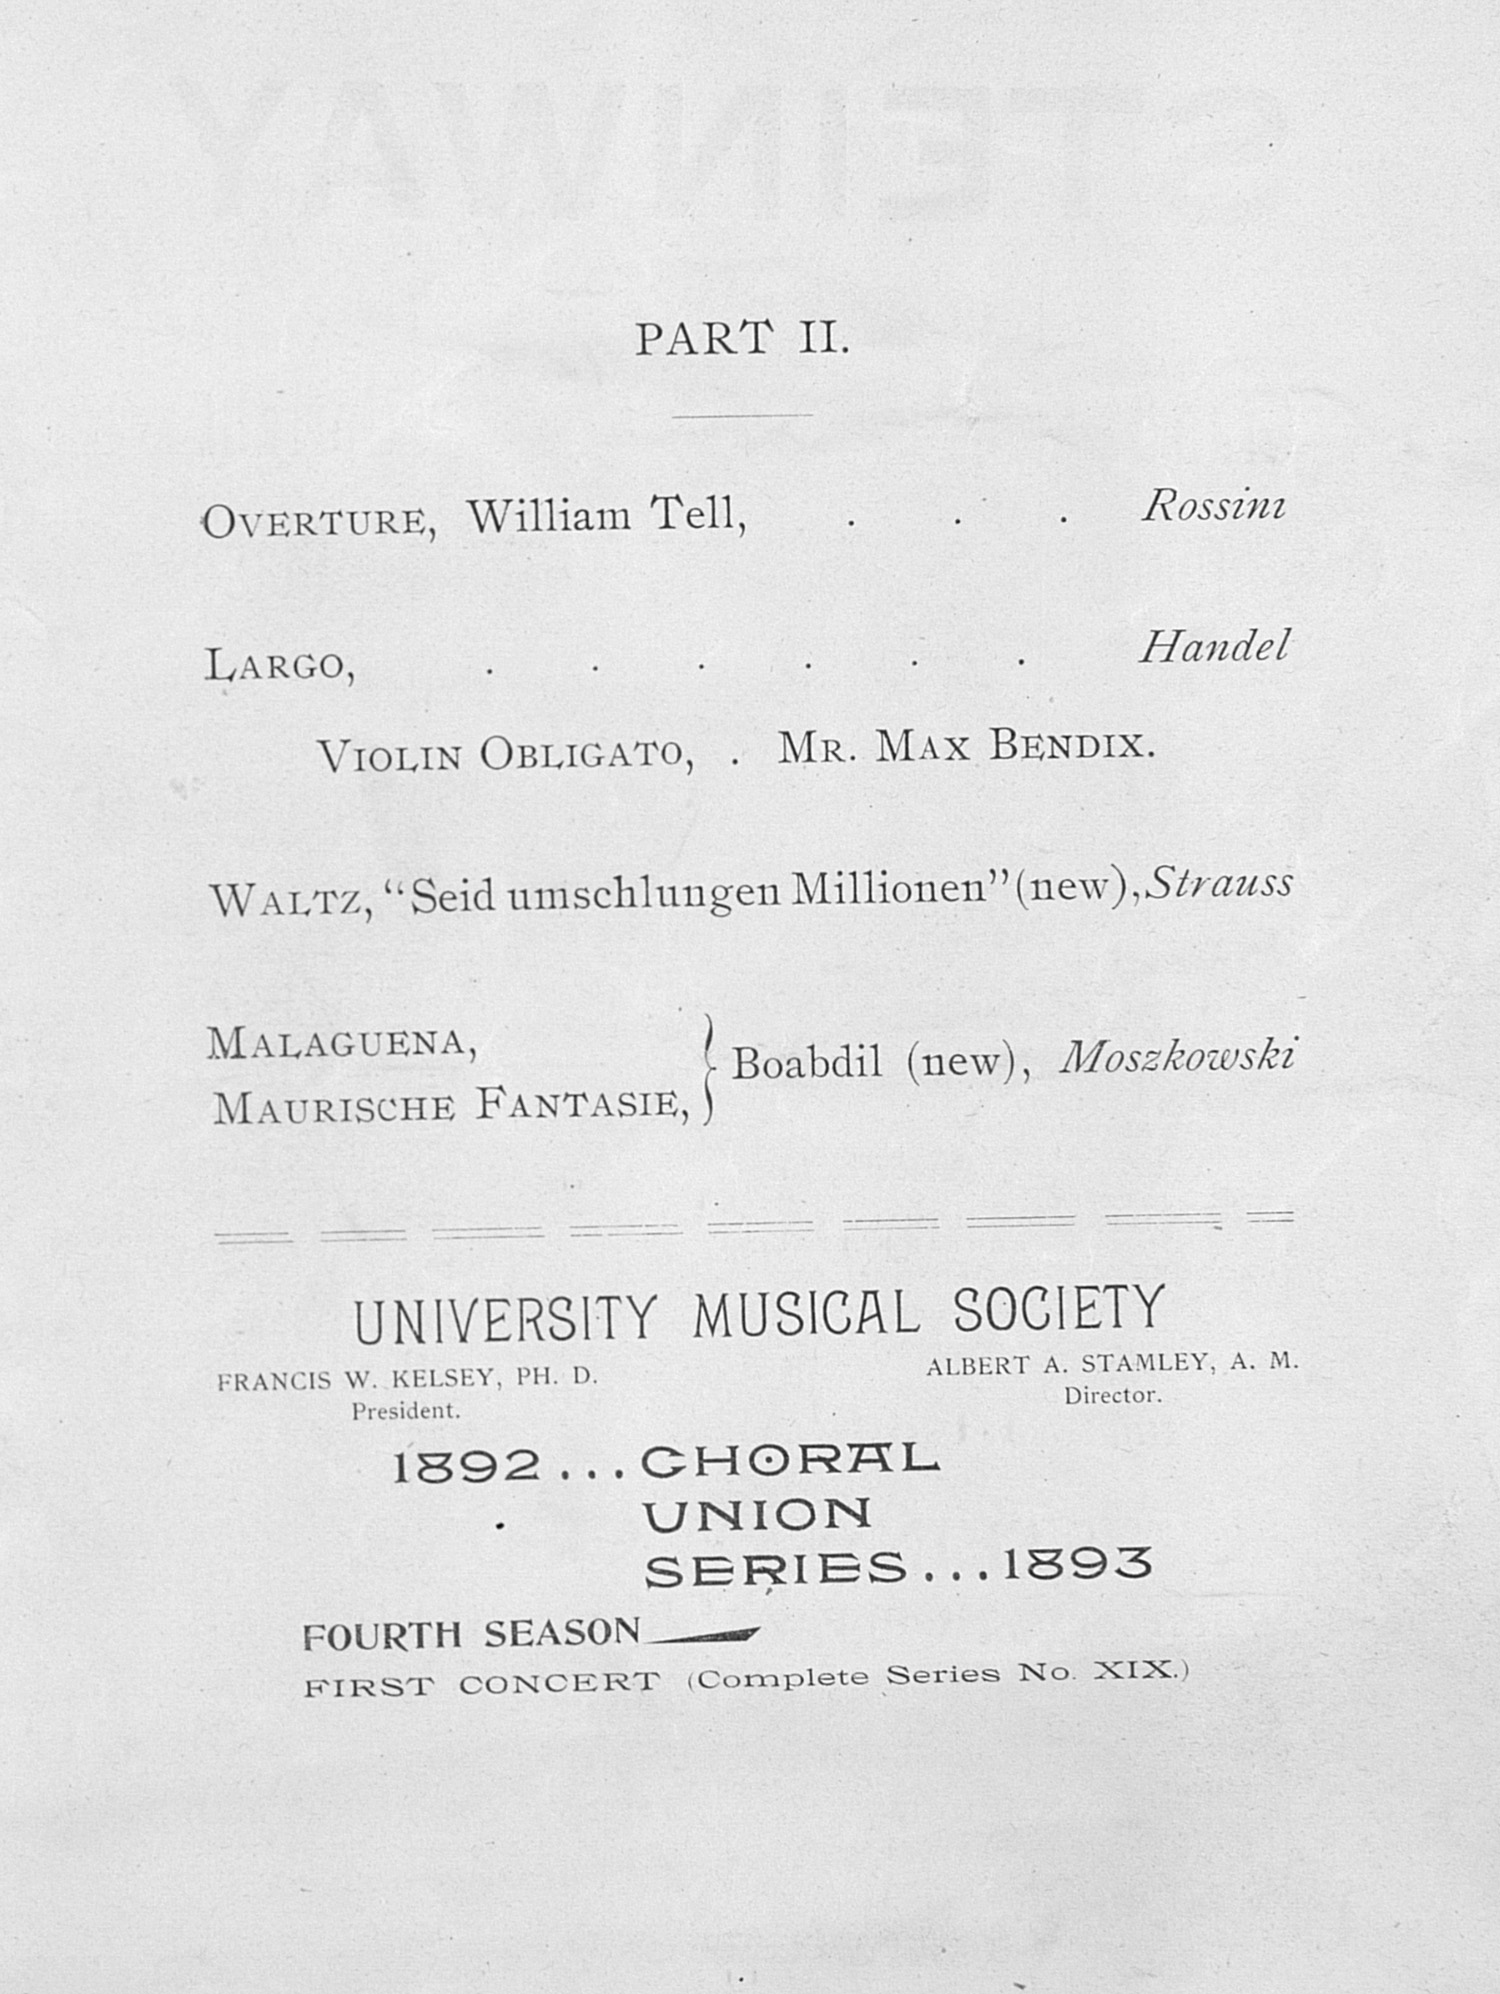 UMS Concert Program, November 21, 1892: Choral Union Series -- Chicago Orchestra image